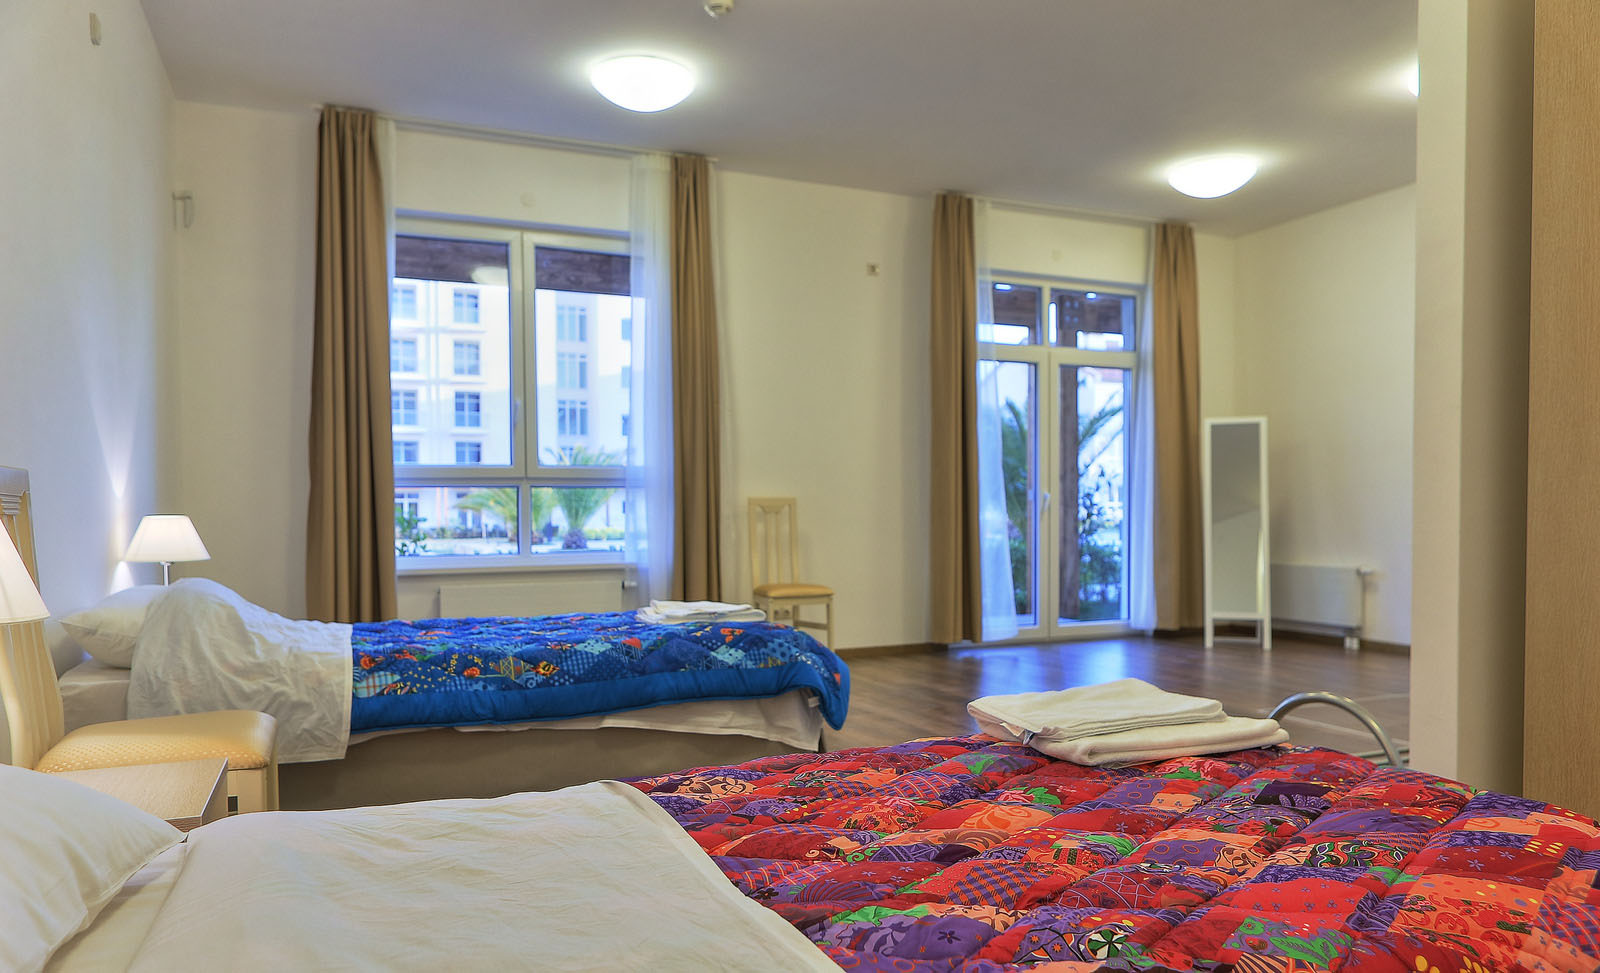 Inside Sochi Olympic Athletes Bedroom